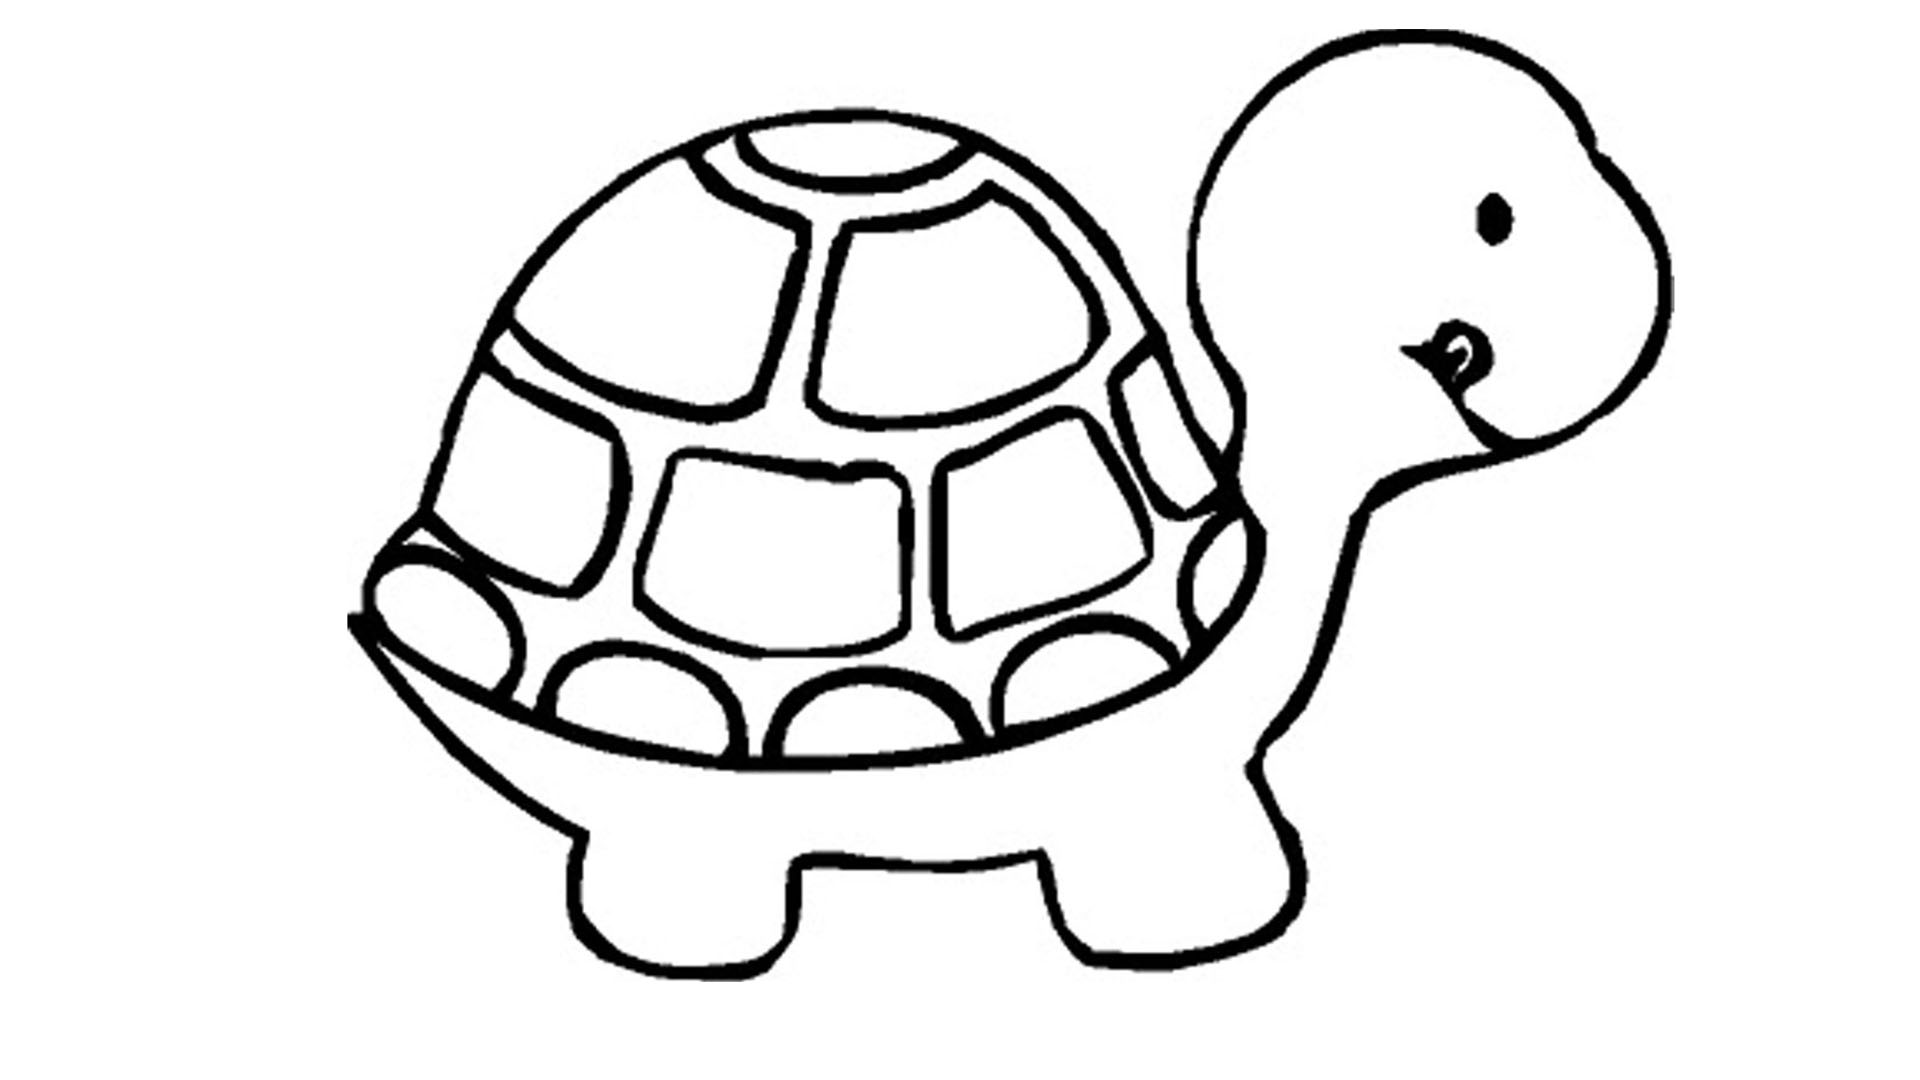 tortoise colouring pictures turtle tortoise free printable coloring page for adults pictures tortoise colouring